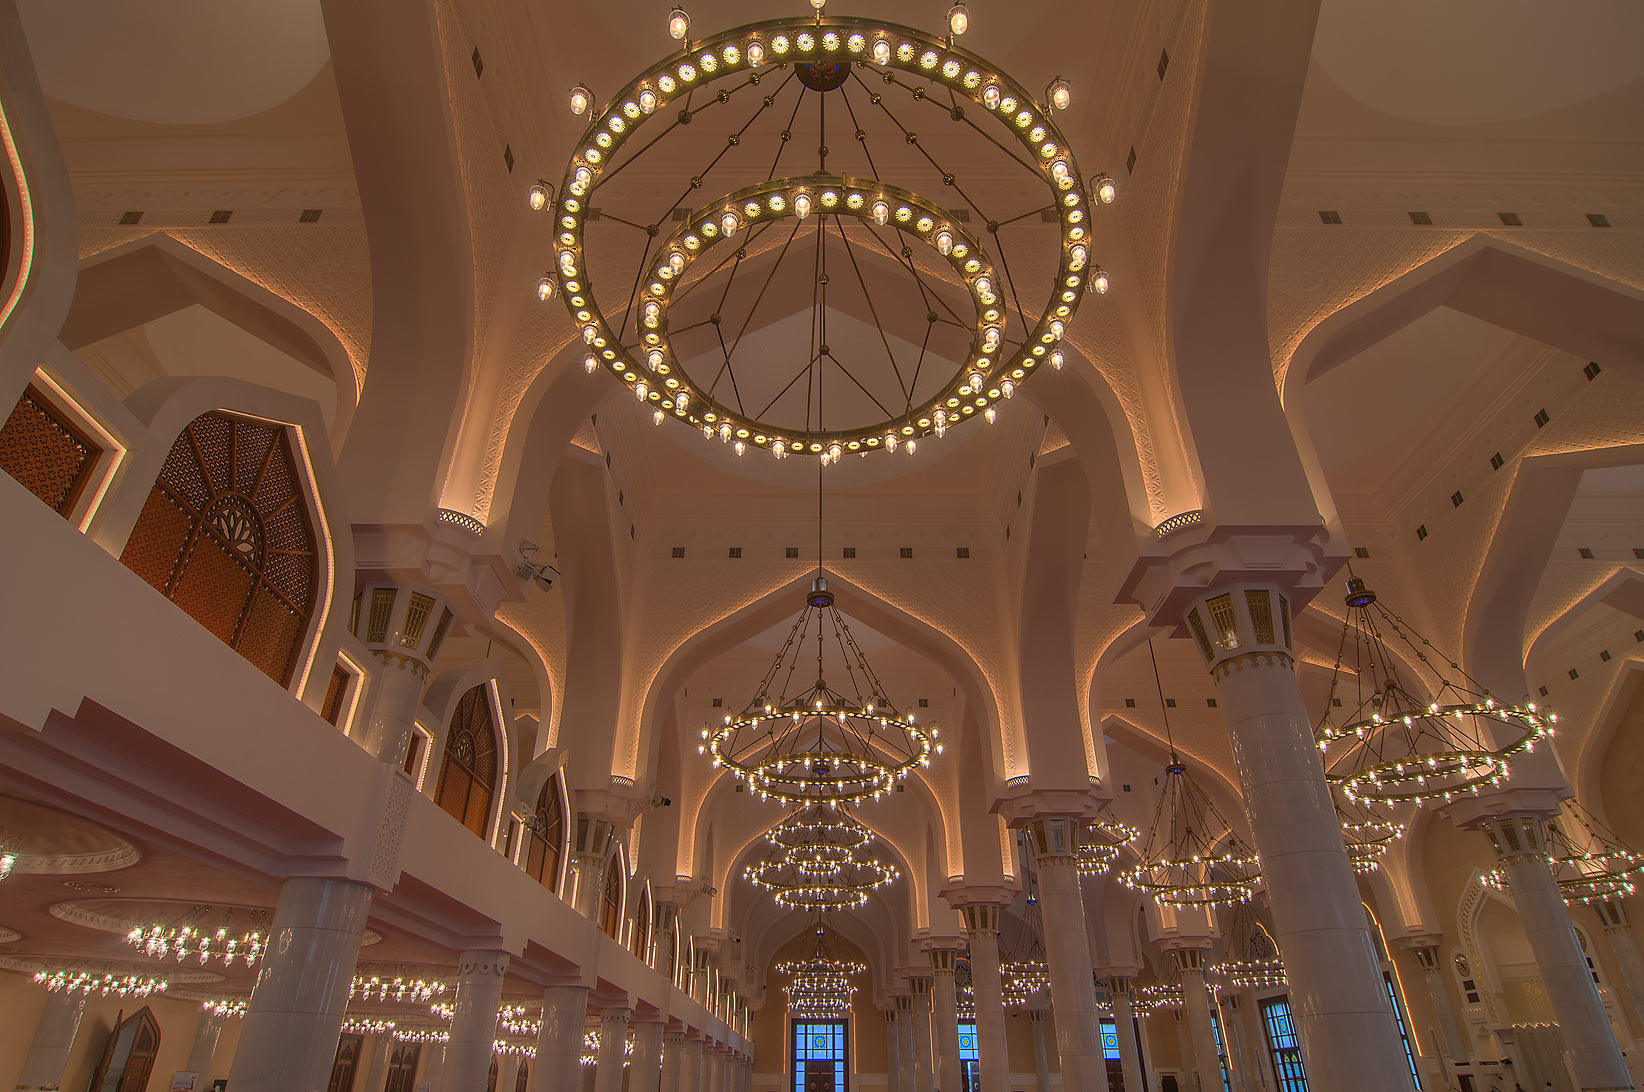 Vaulst of prayer hall (musallah) in State Mosque...Ibn Abdul Wahhab Mosque). Doha, Qatar